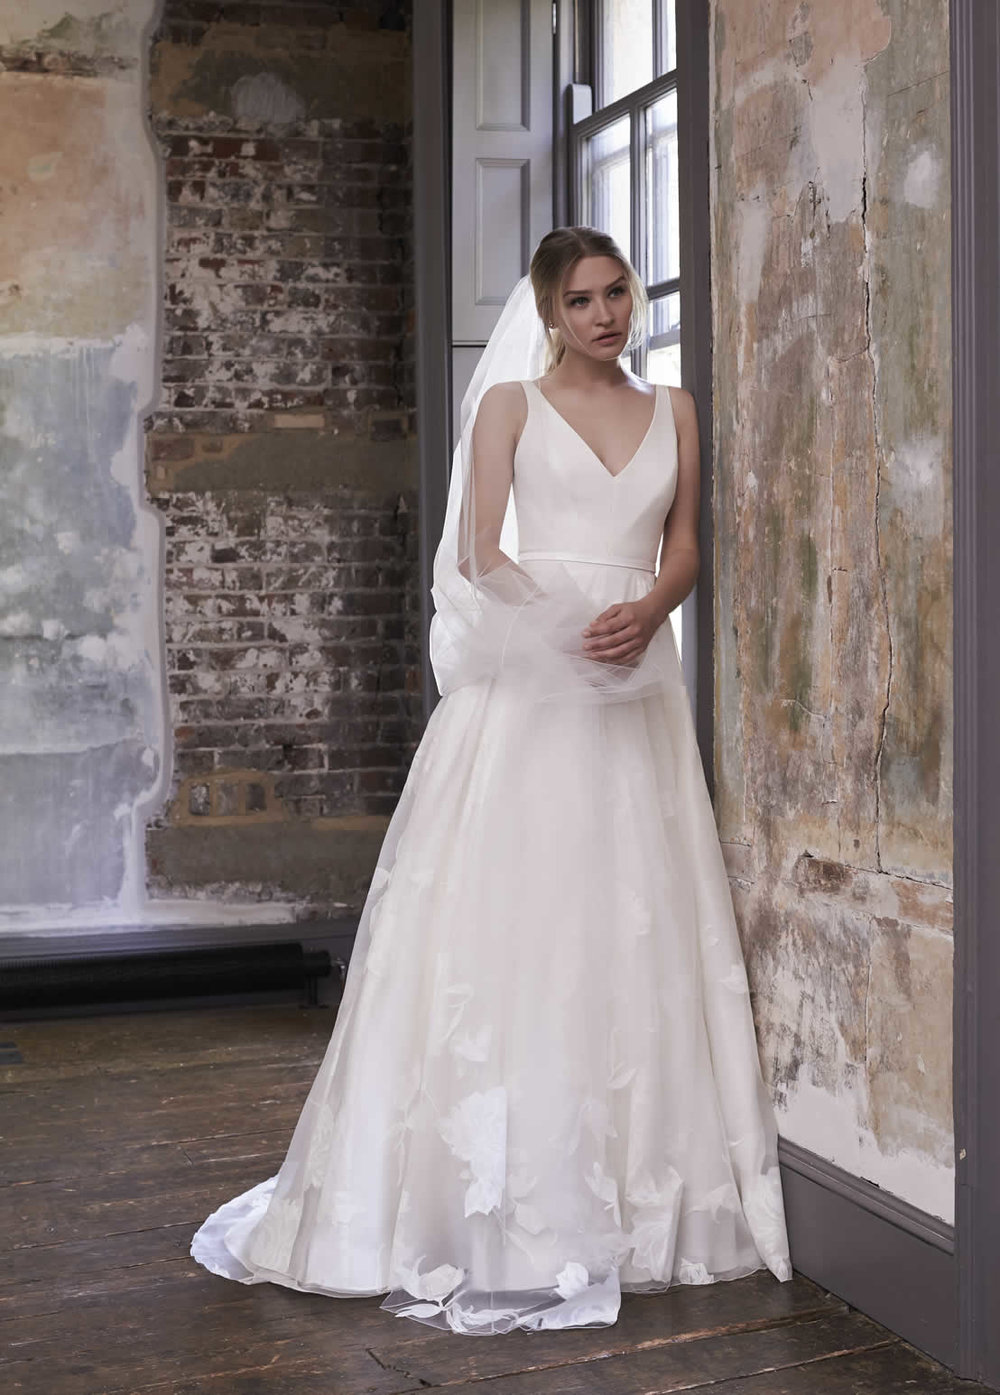 Sassi Holford - Experience the new collection of Britain's most respected bridal designer!